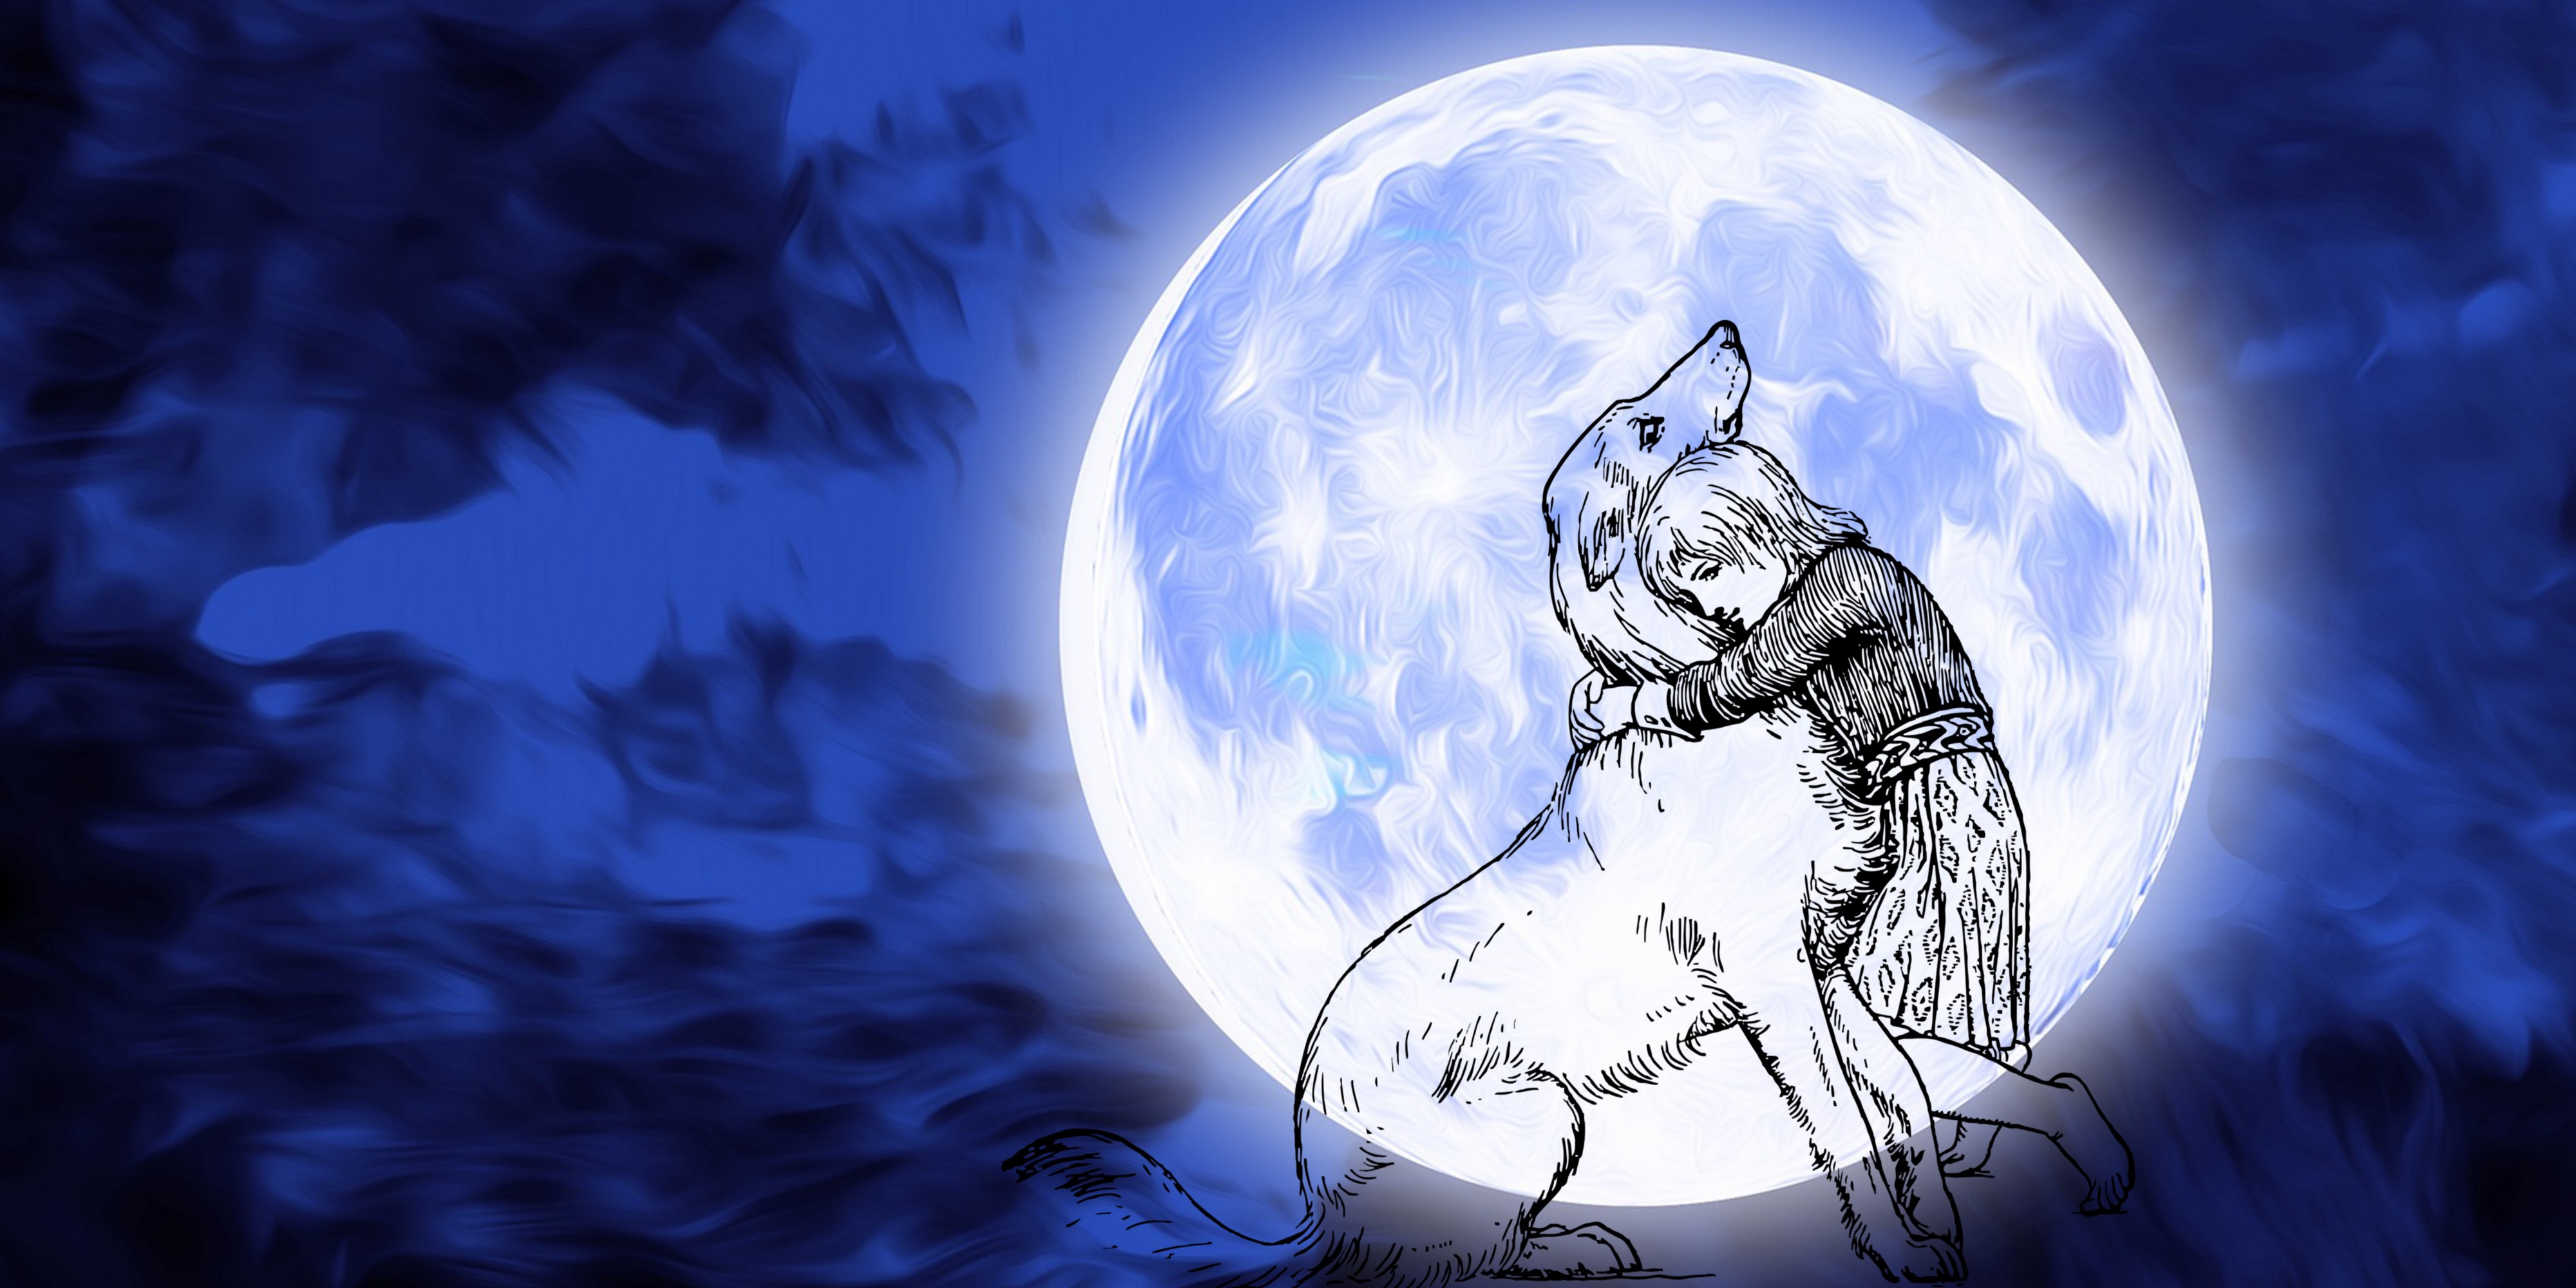 Ink drawing of young girl hugging her dog against full moon and midnight blue sky